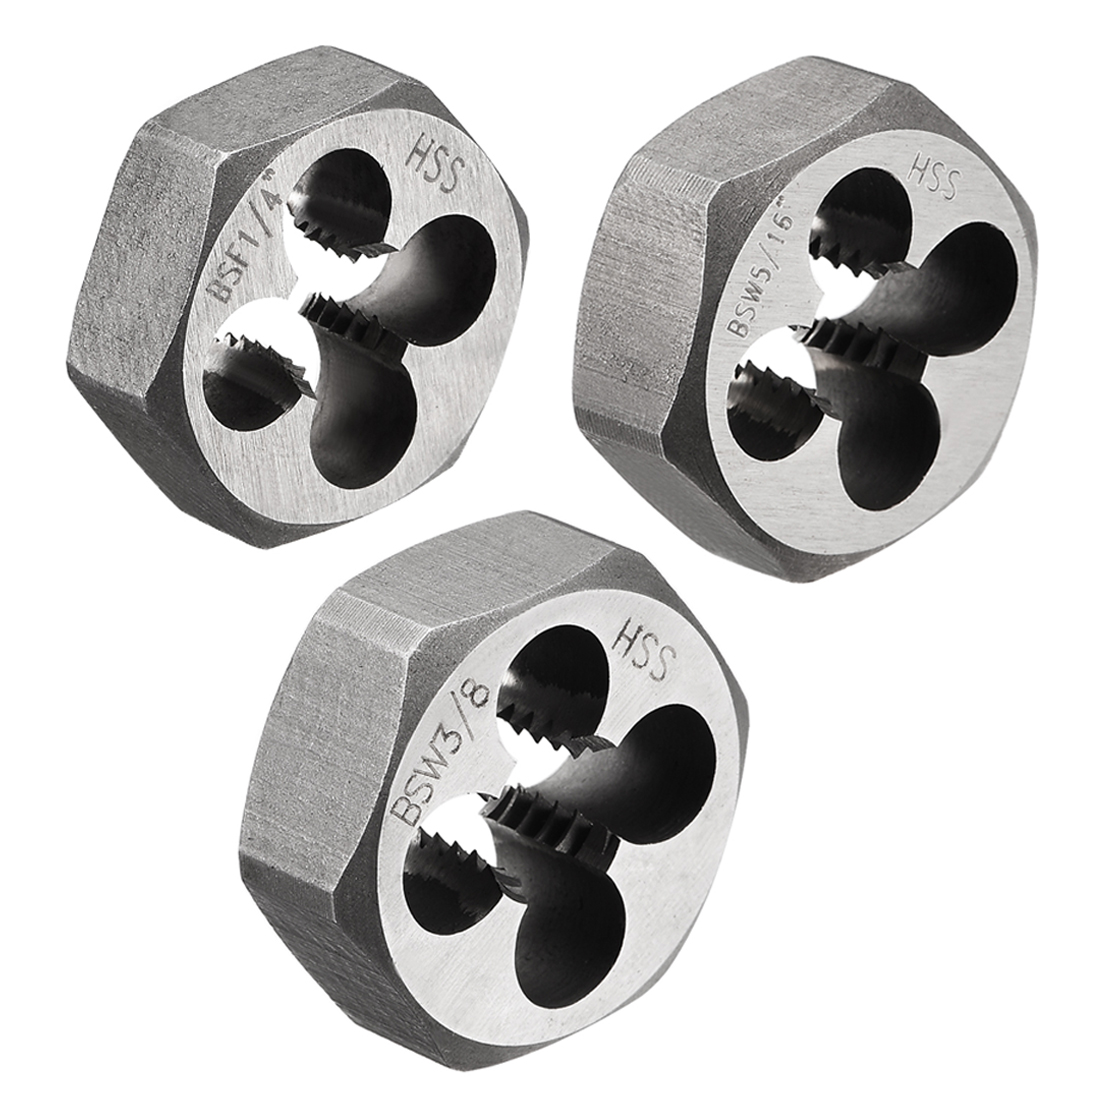 HSS High Speed Steel uxcell 4-40 UNC Right Hand Round Die Machine Thread Die Threading Die Screw Die Tool